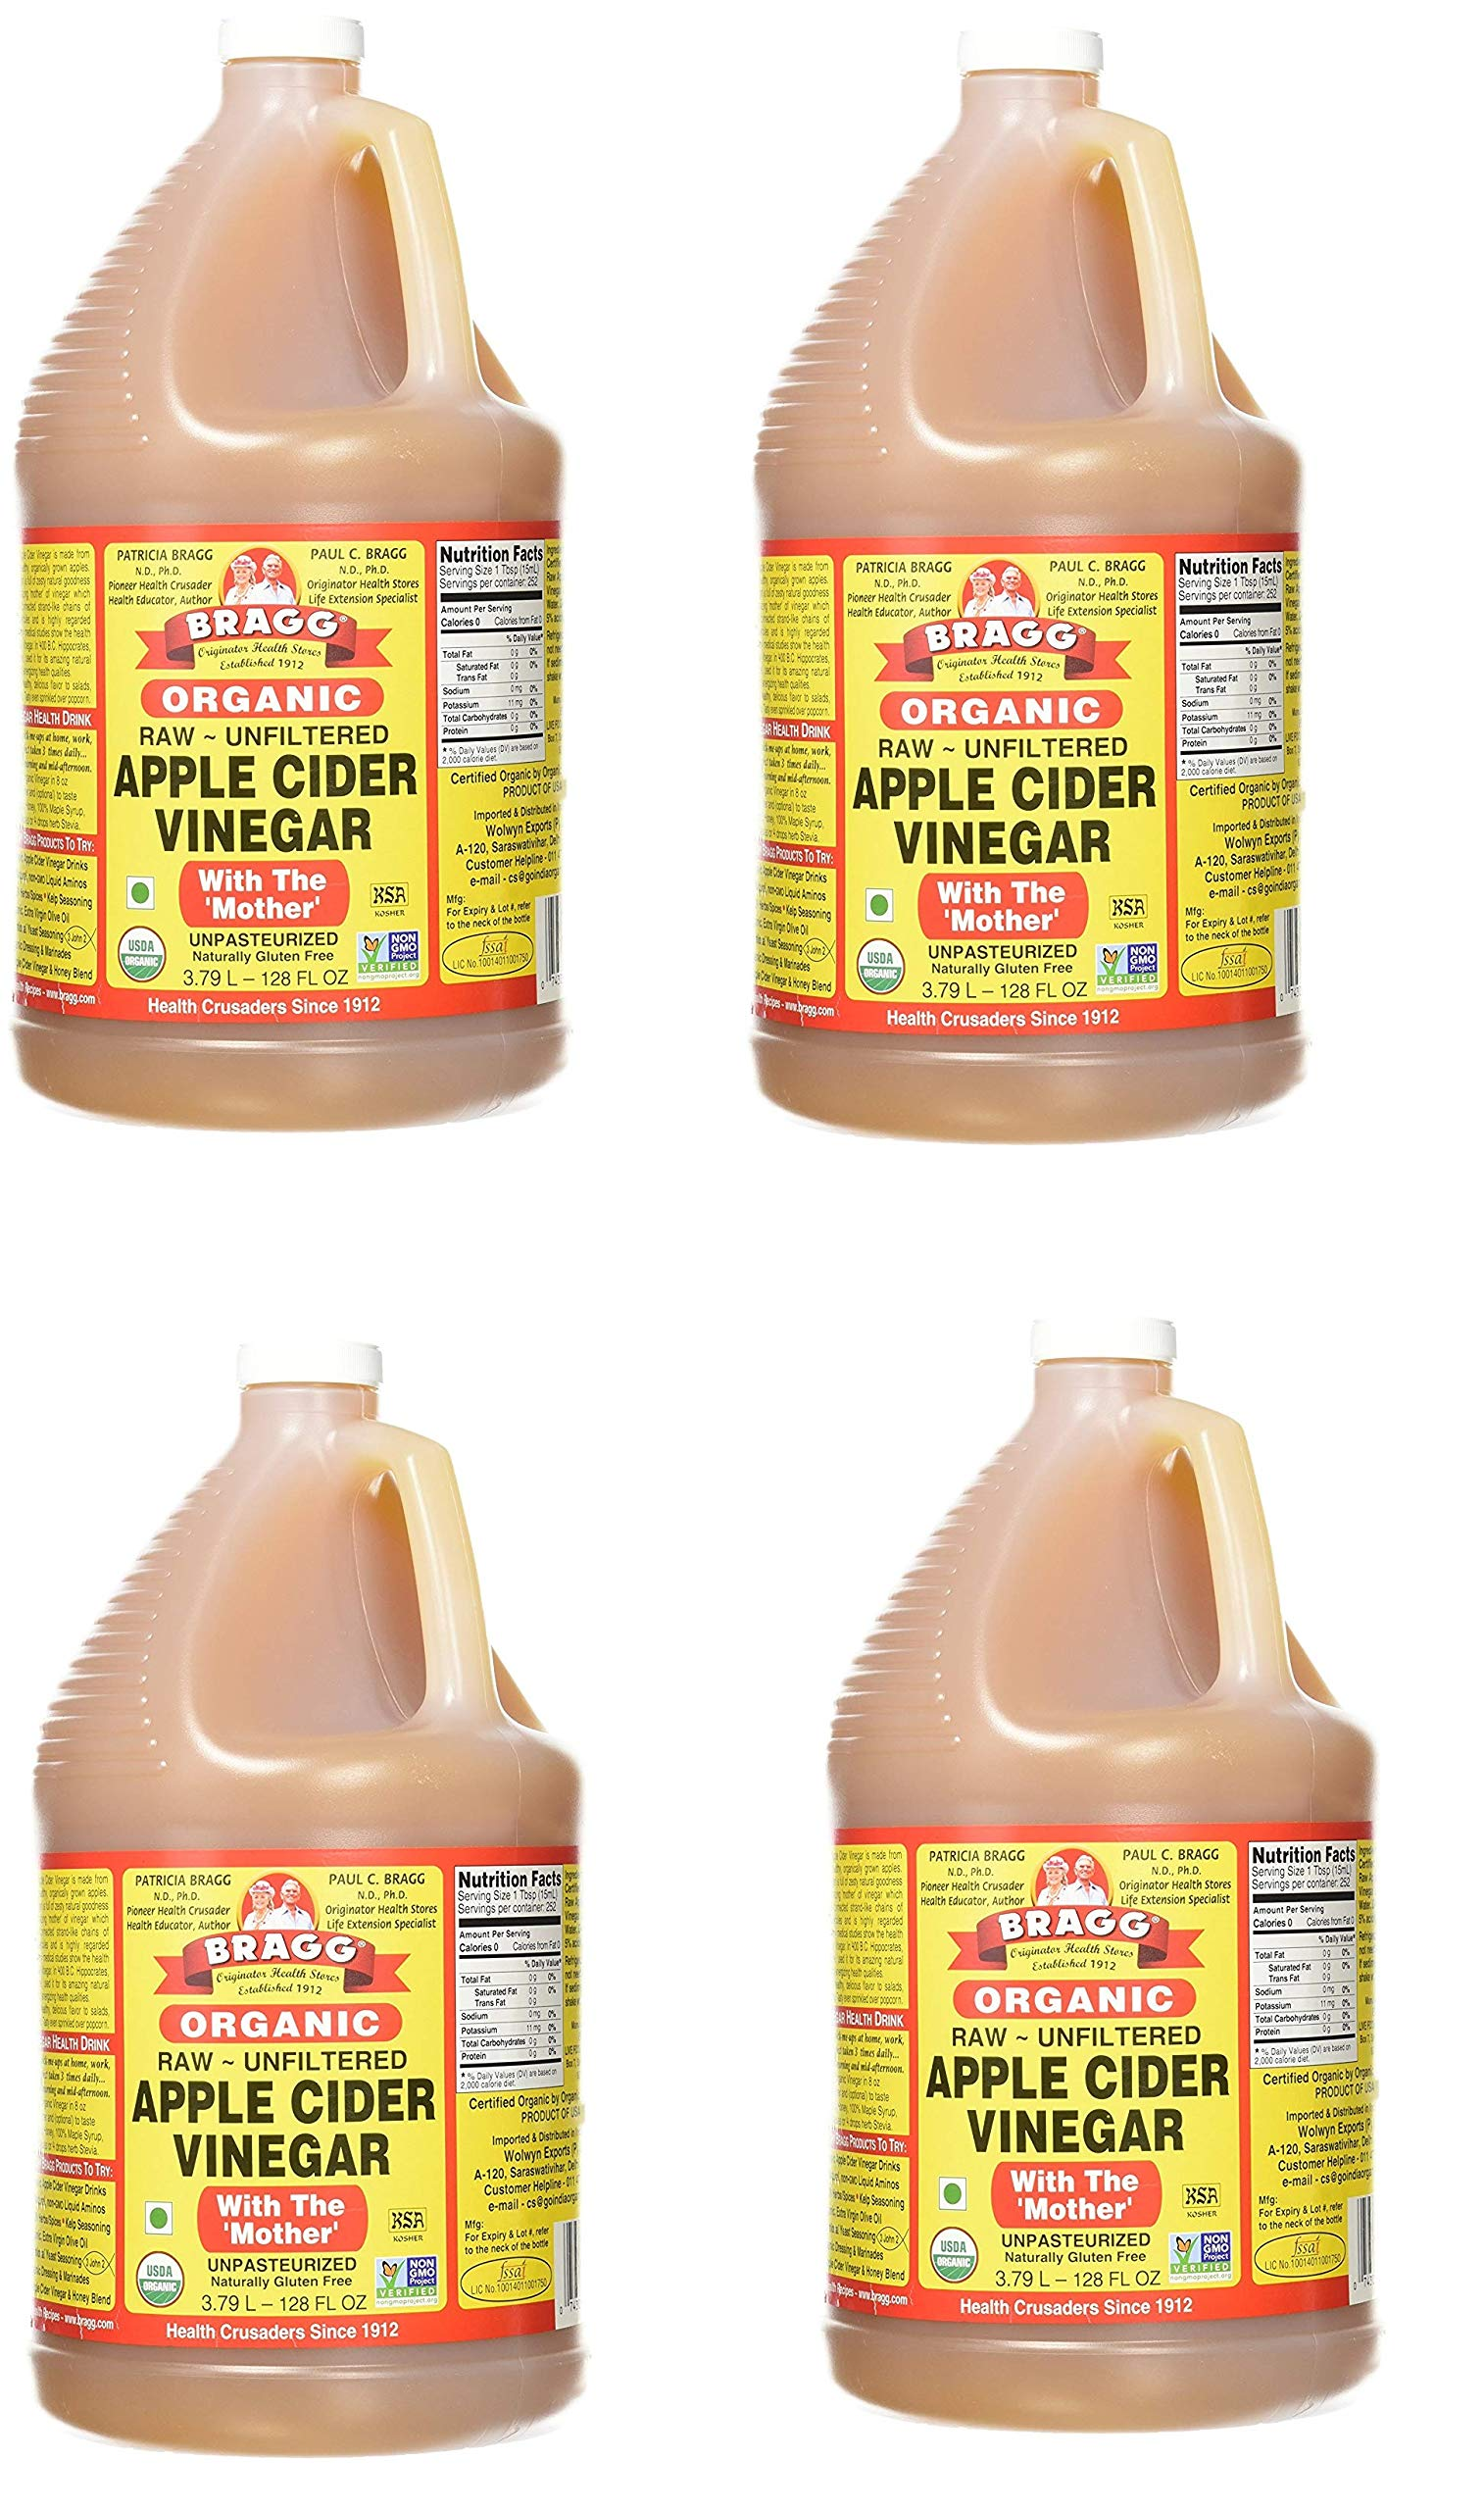 Organic Apple Cider Vinegar, Raw, Unfiltered, with The Mother, 128 Ounce by Bragg